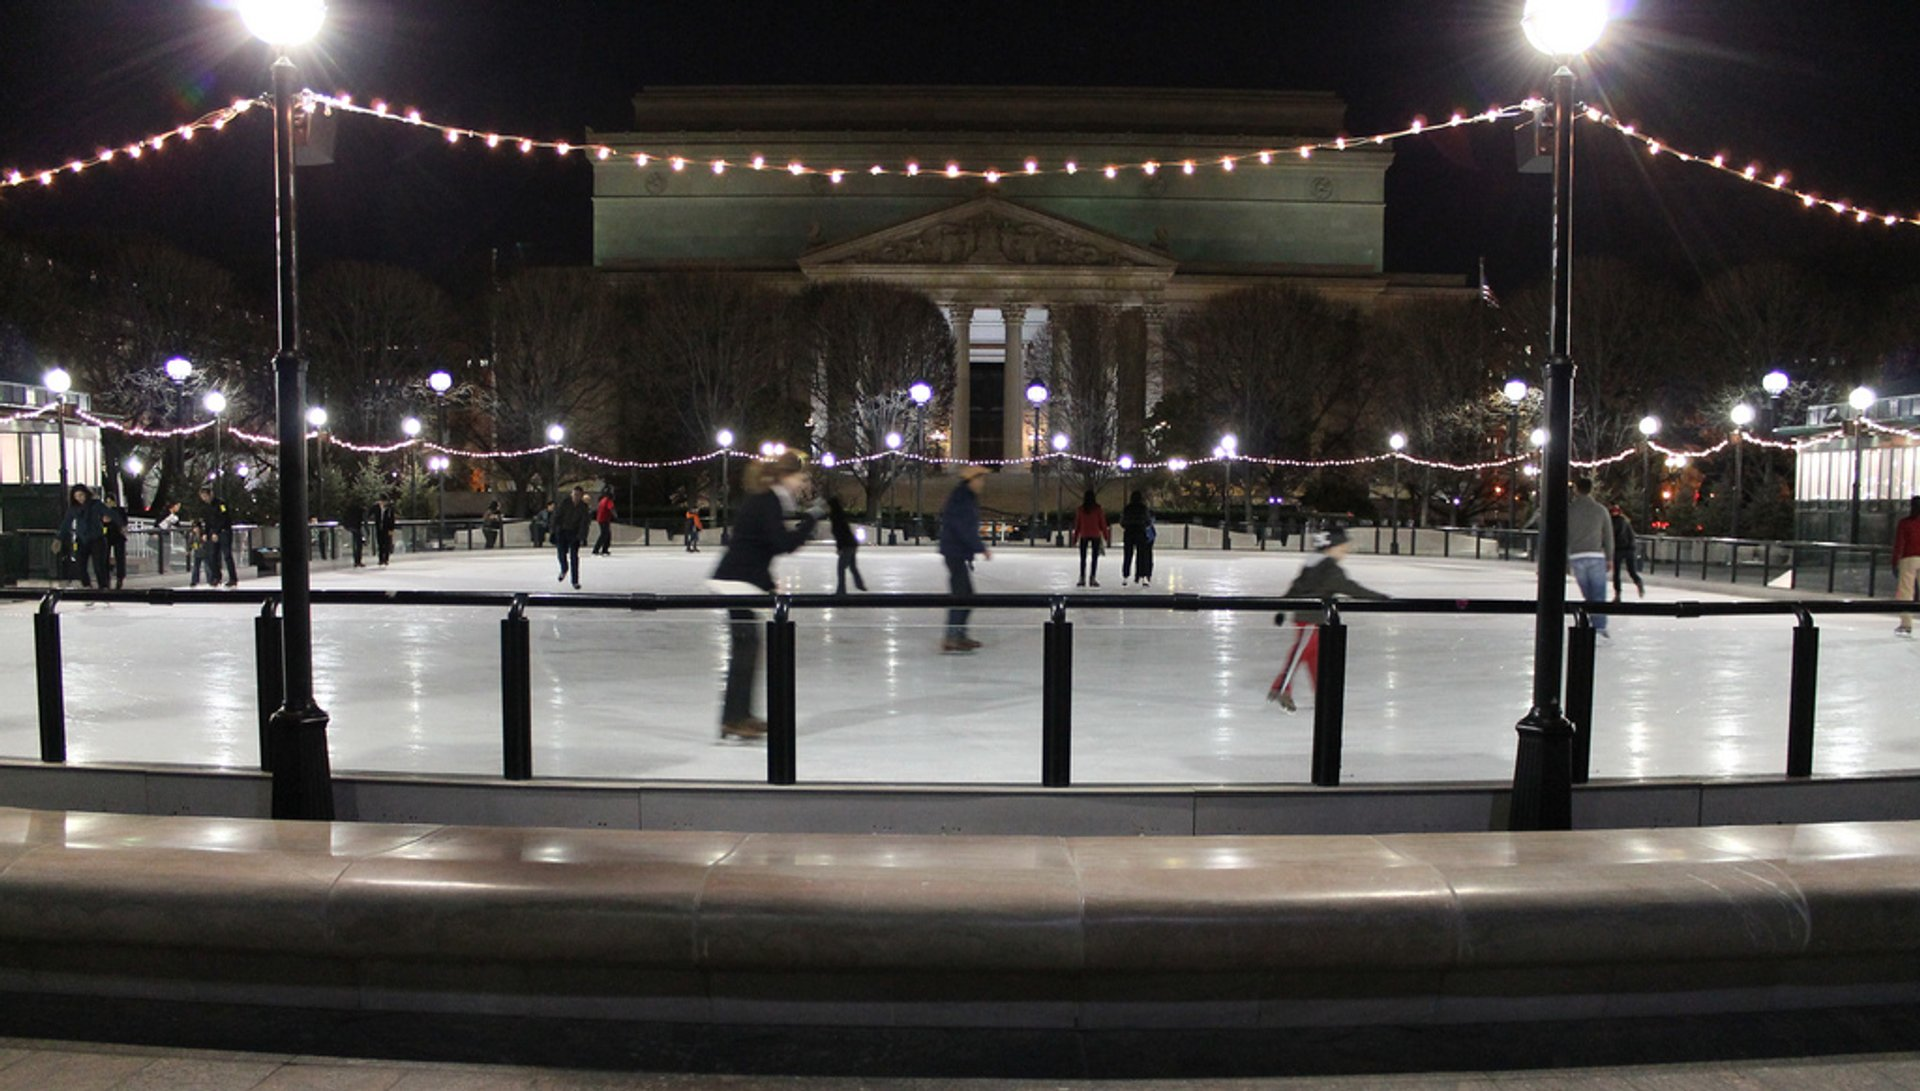 Ice Skating in Washington, D.C. 2020 - Best Time